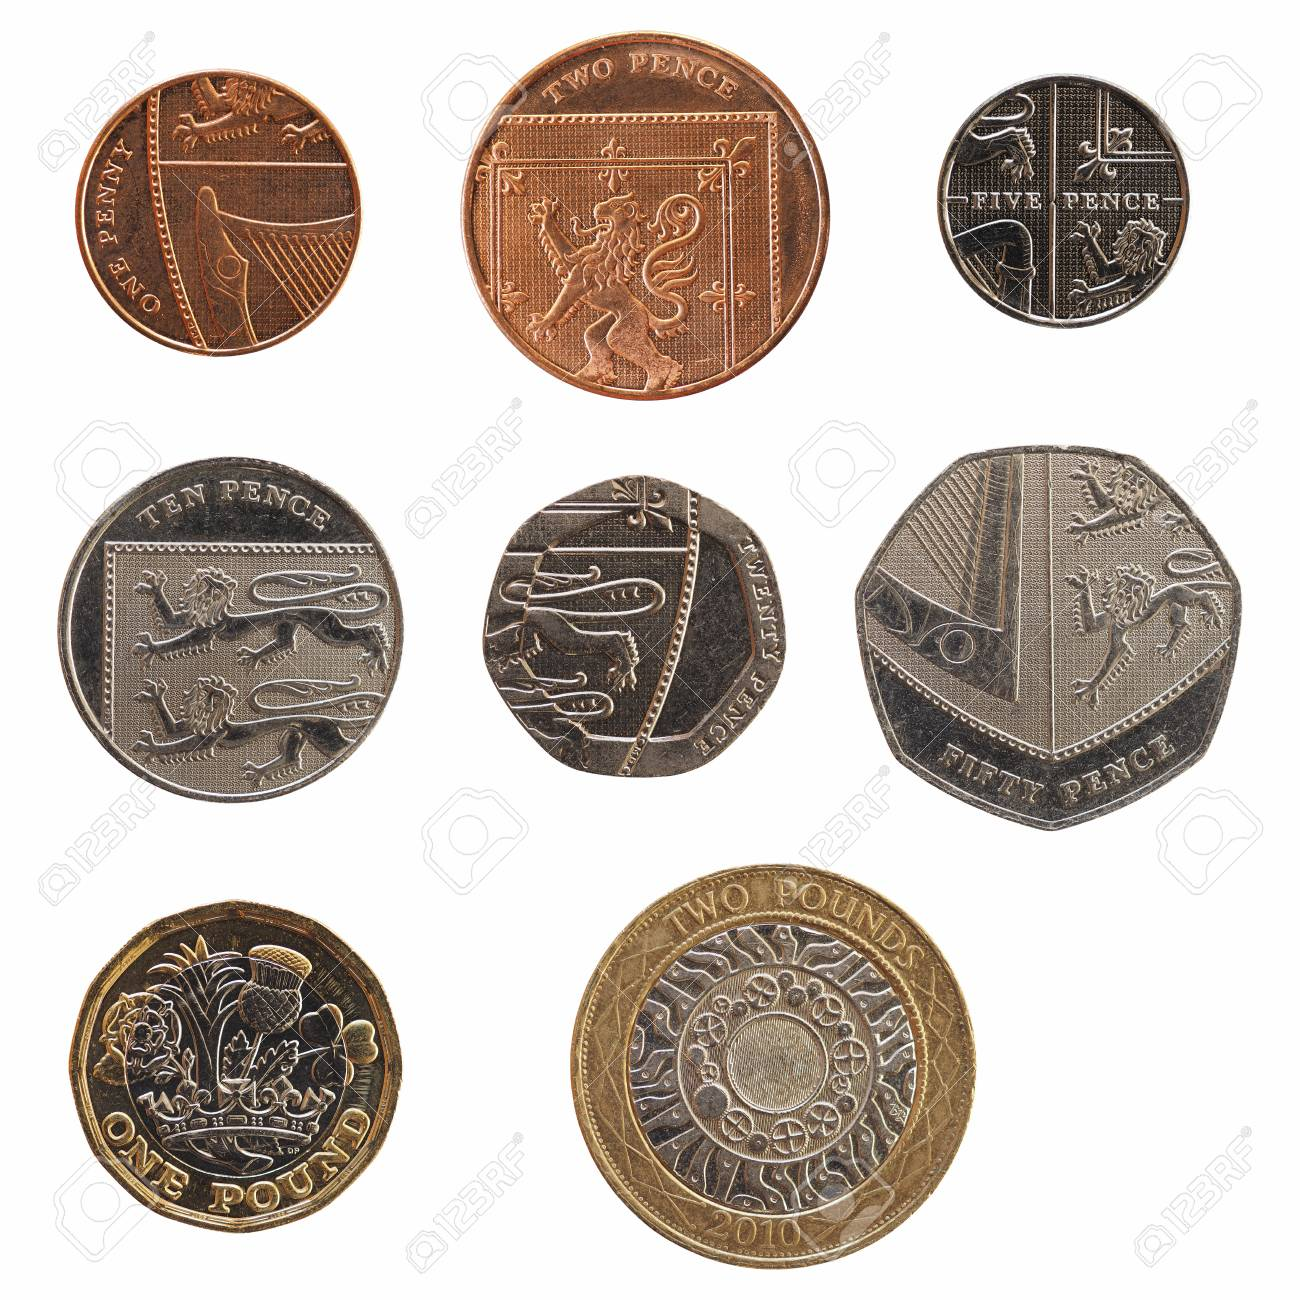 Full range of British coins money (GBP), currency of United Kingdom,